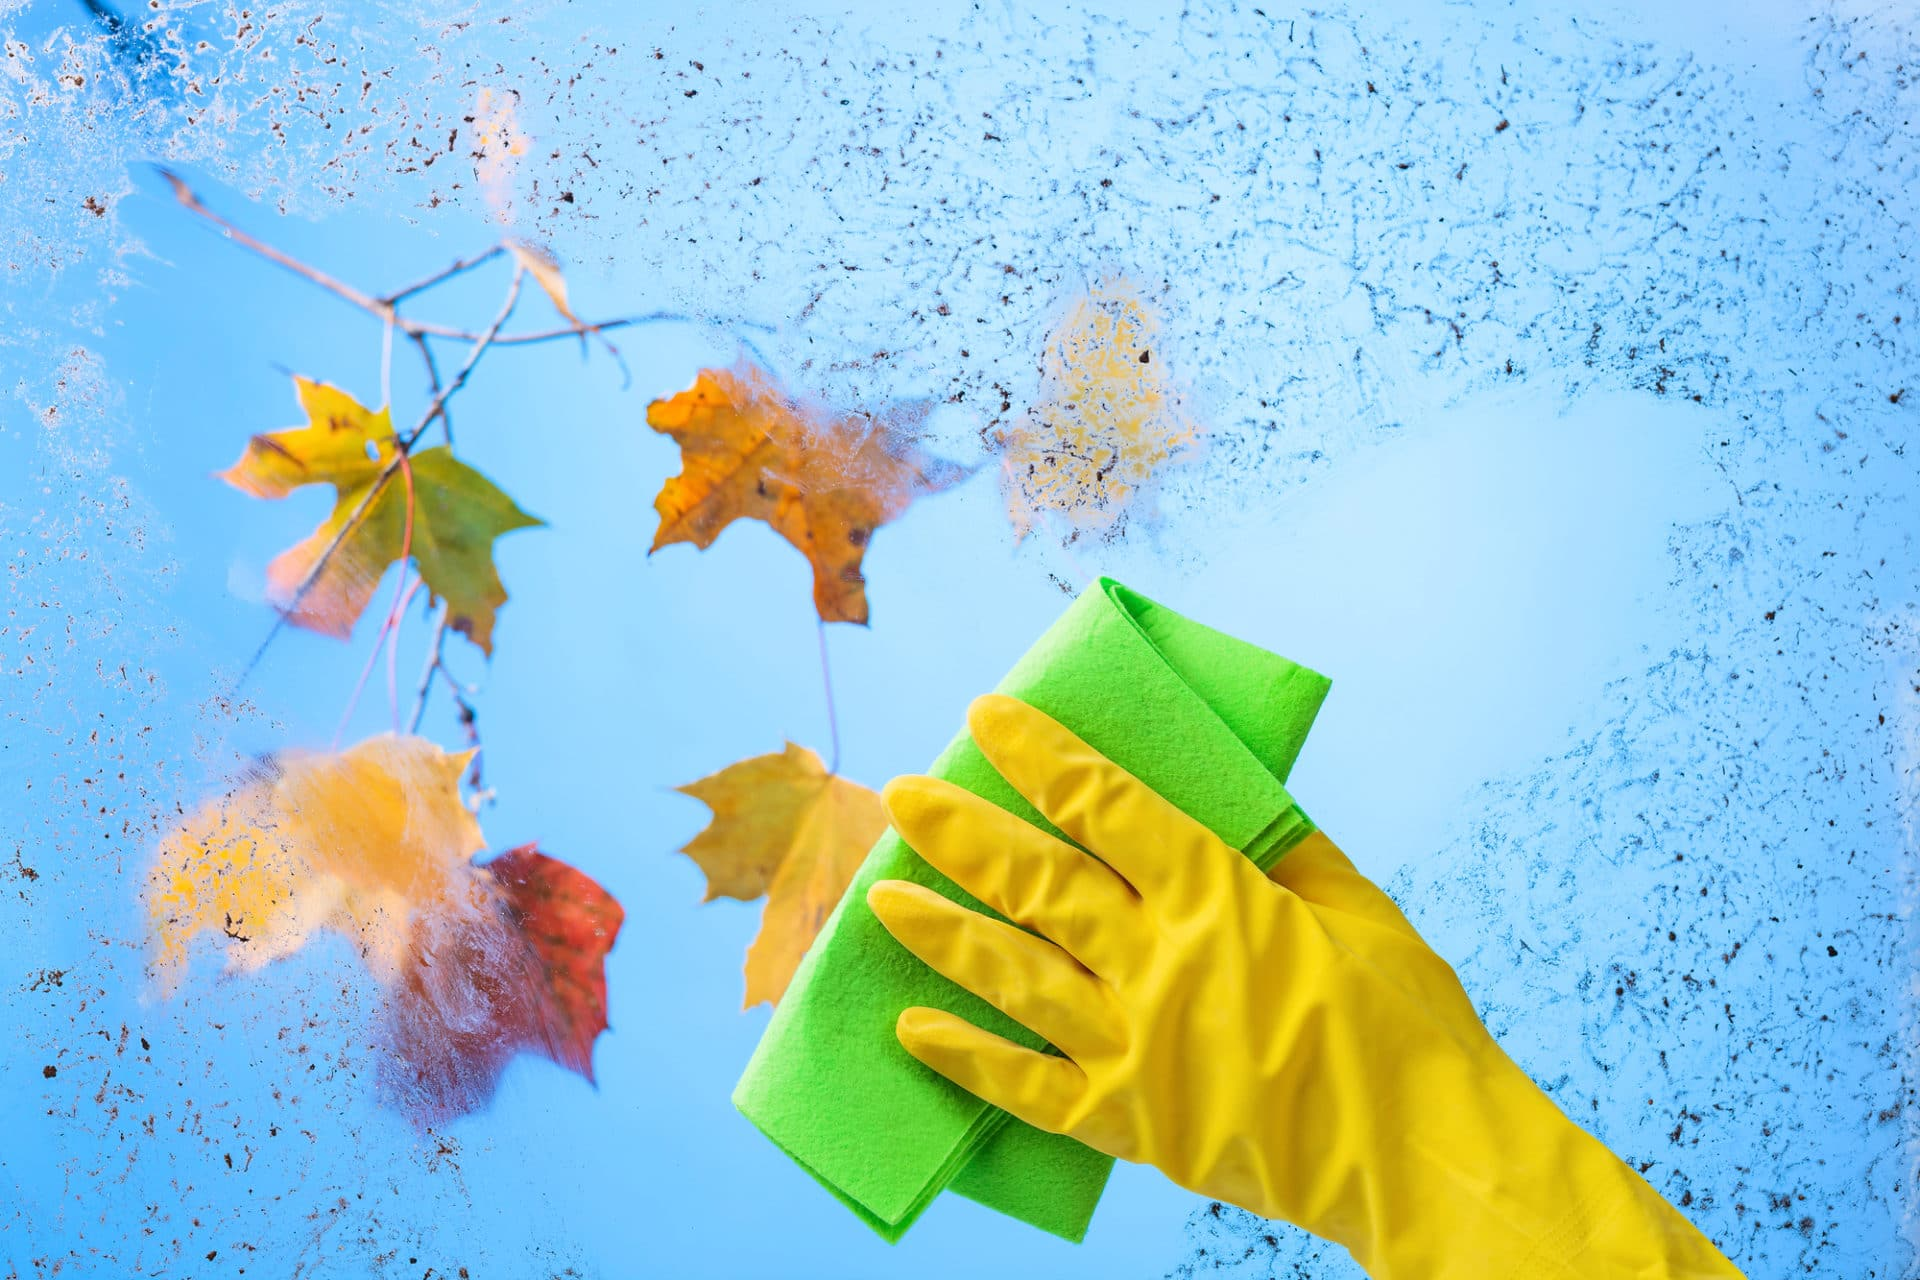 Spring Cleaning in October! – Tech Tip for October 29, 2019